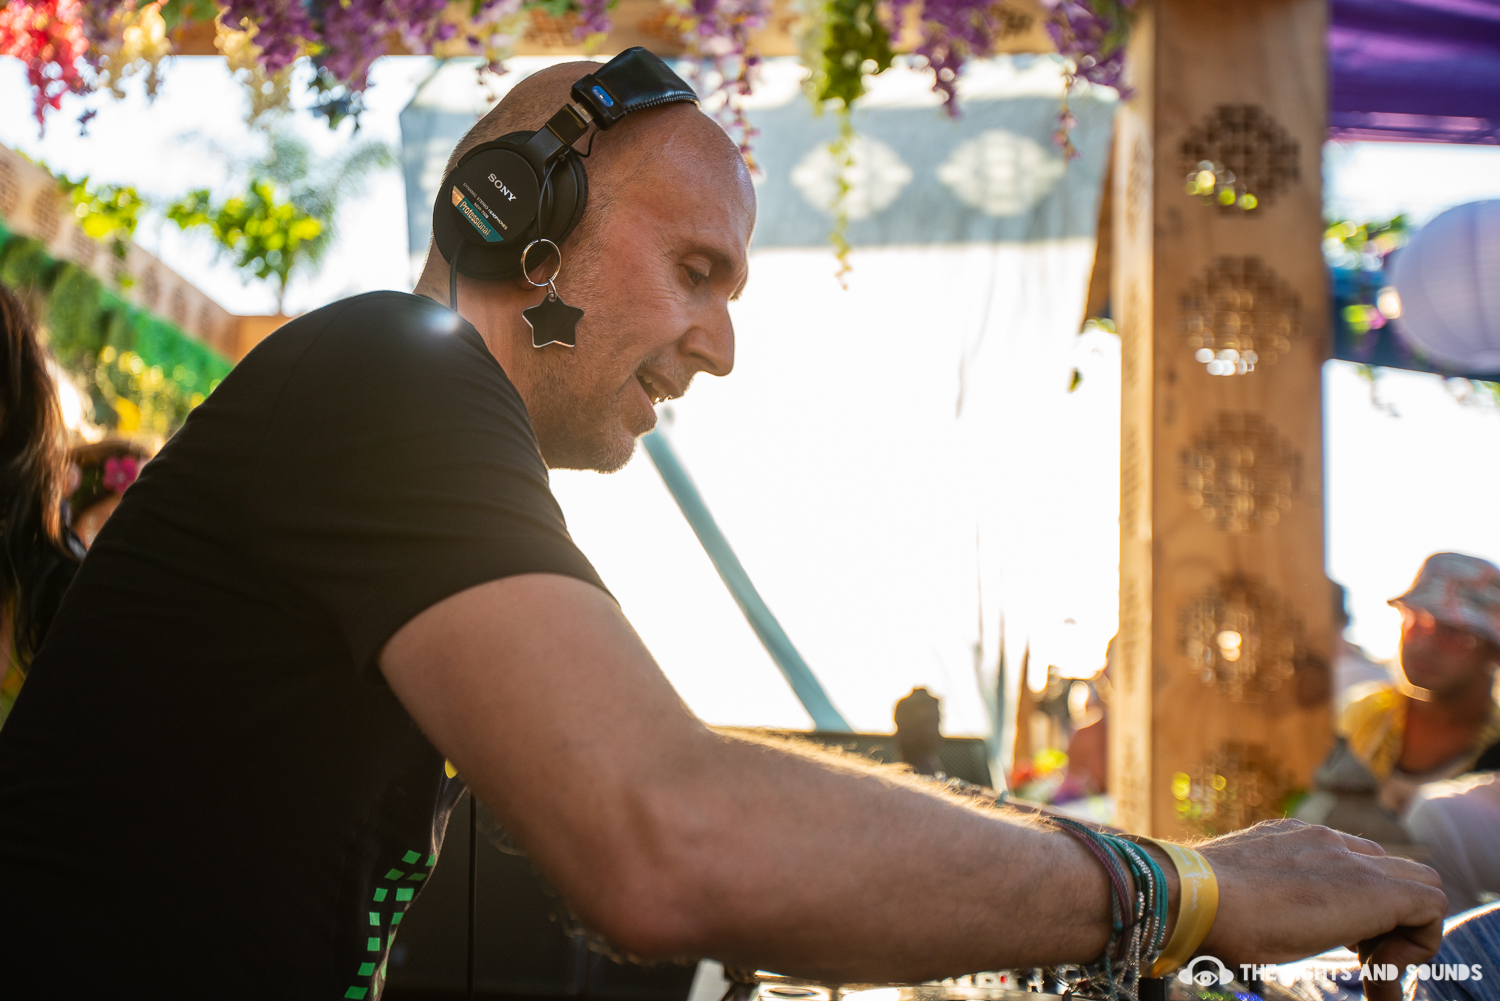 Lee Burridge, All Day I Dream LA